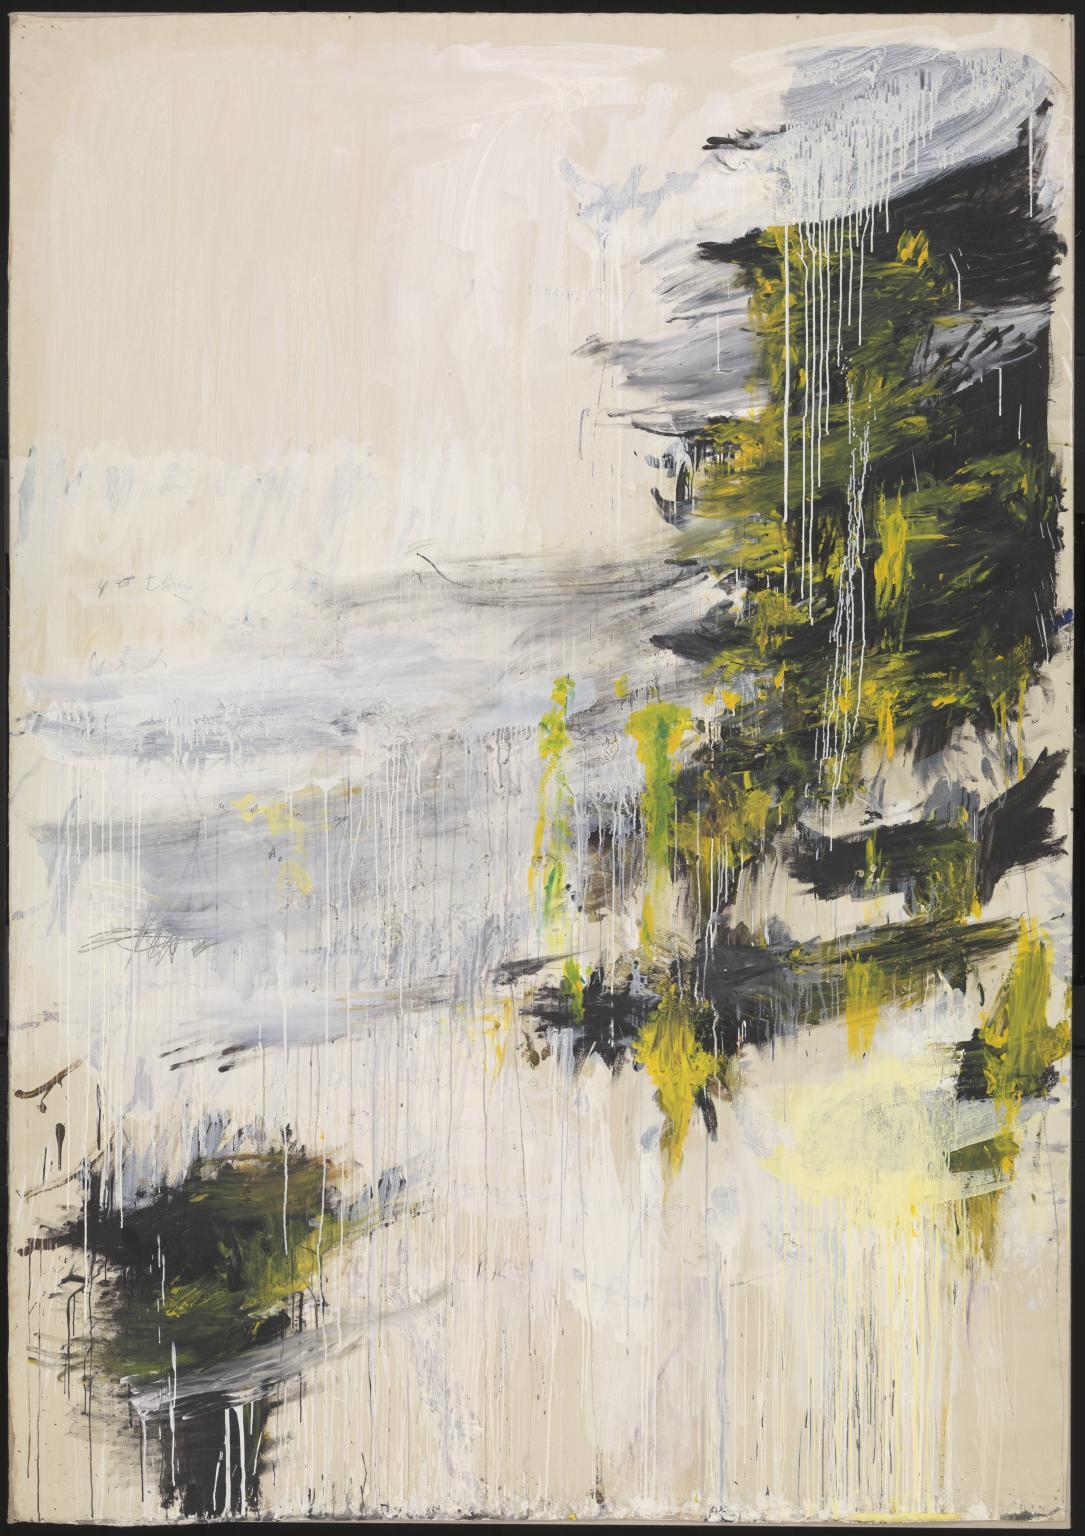 Quattro Stagioni: Inverno 1993-5 by Cy Twombly 1928-2011